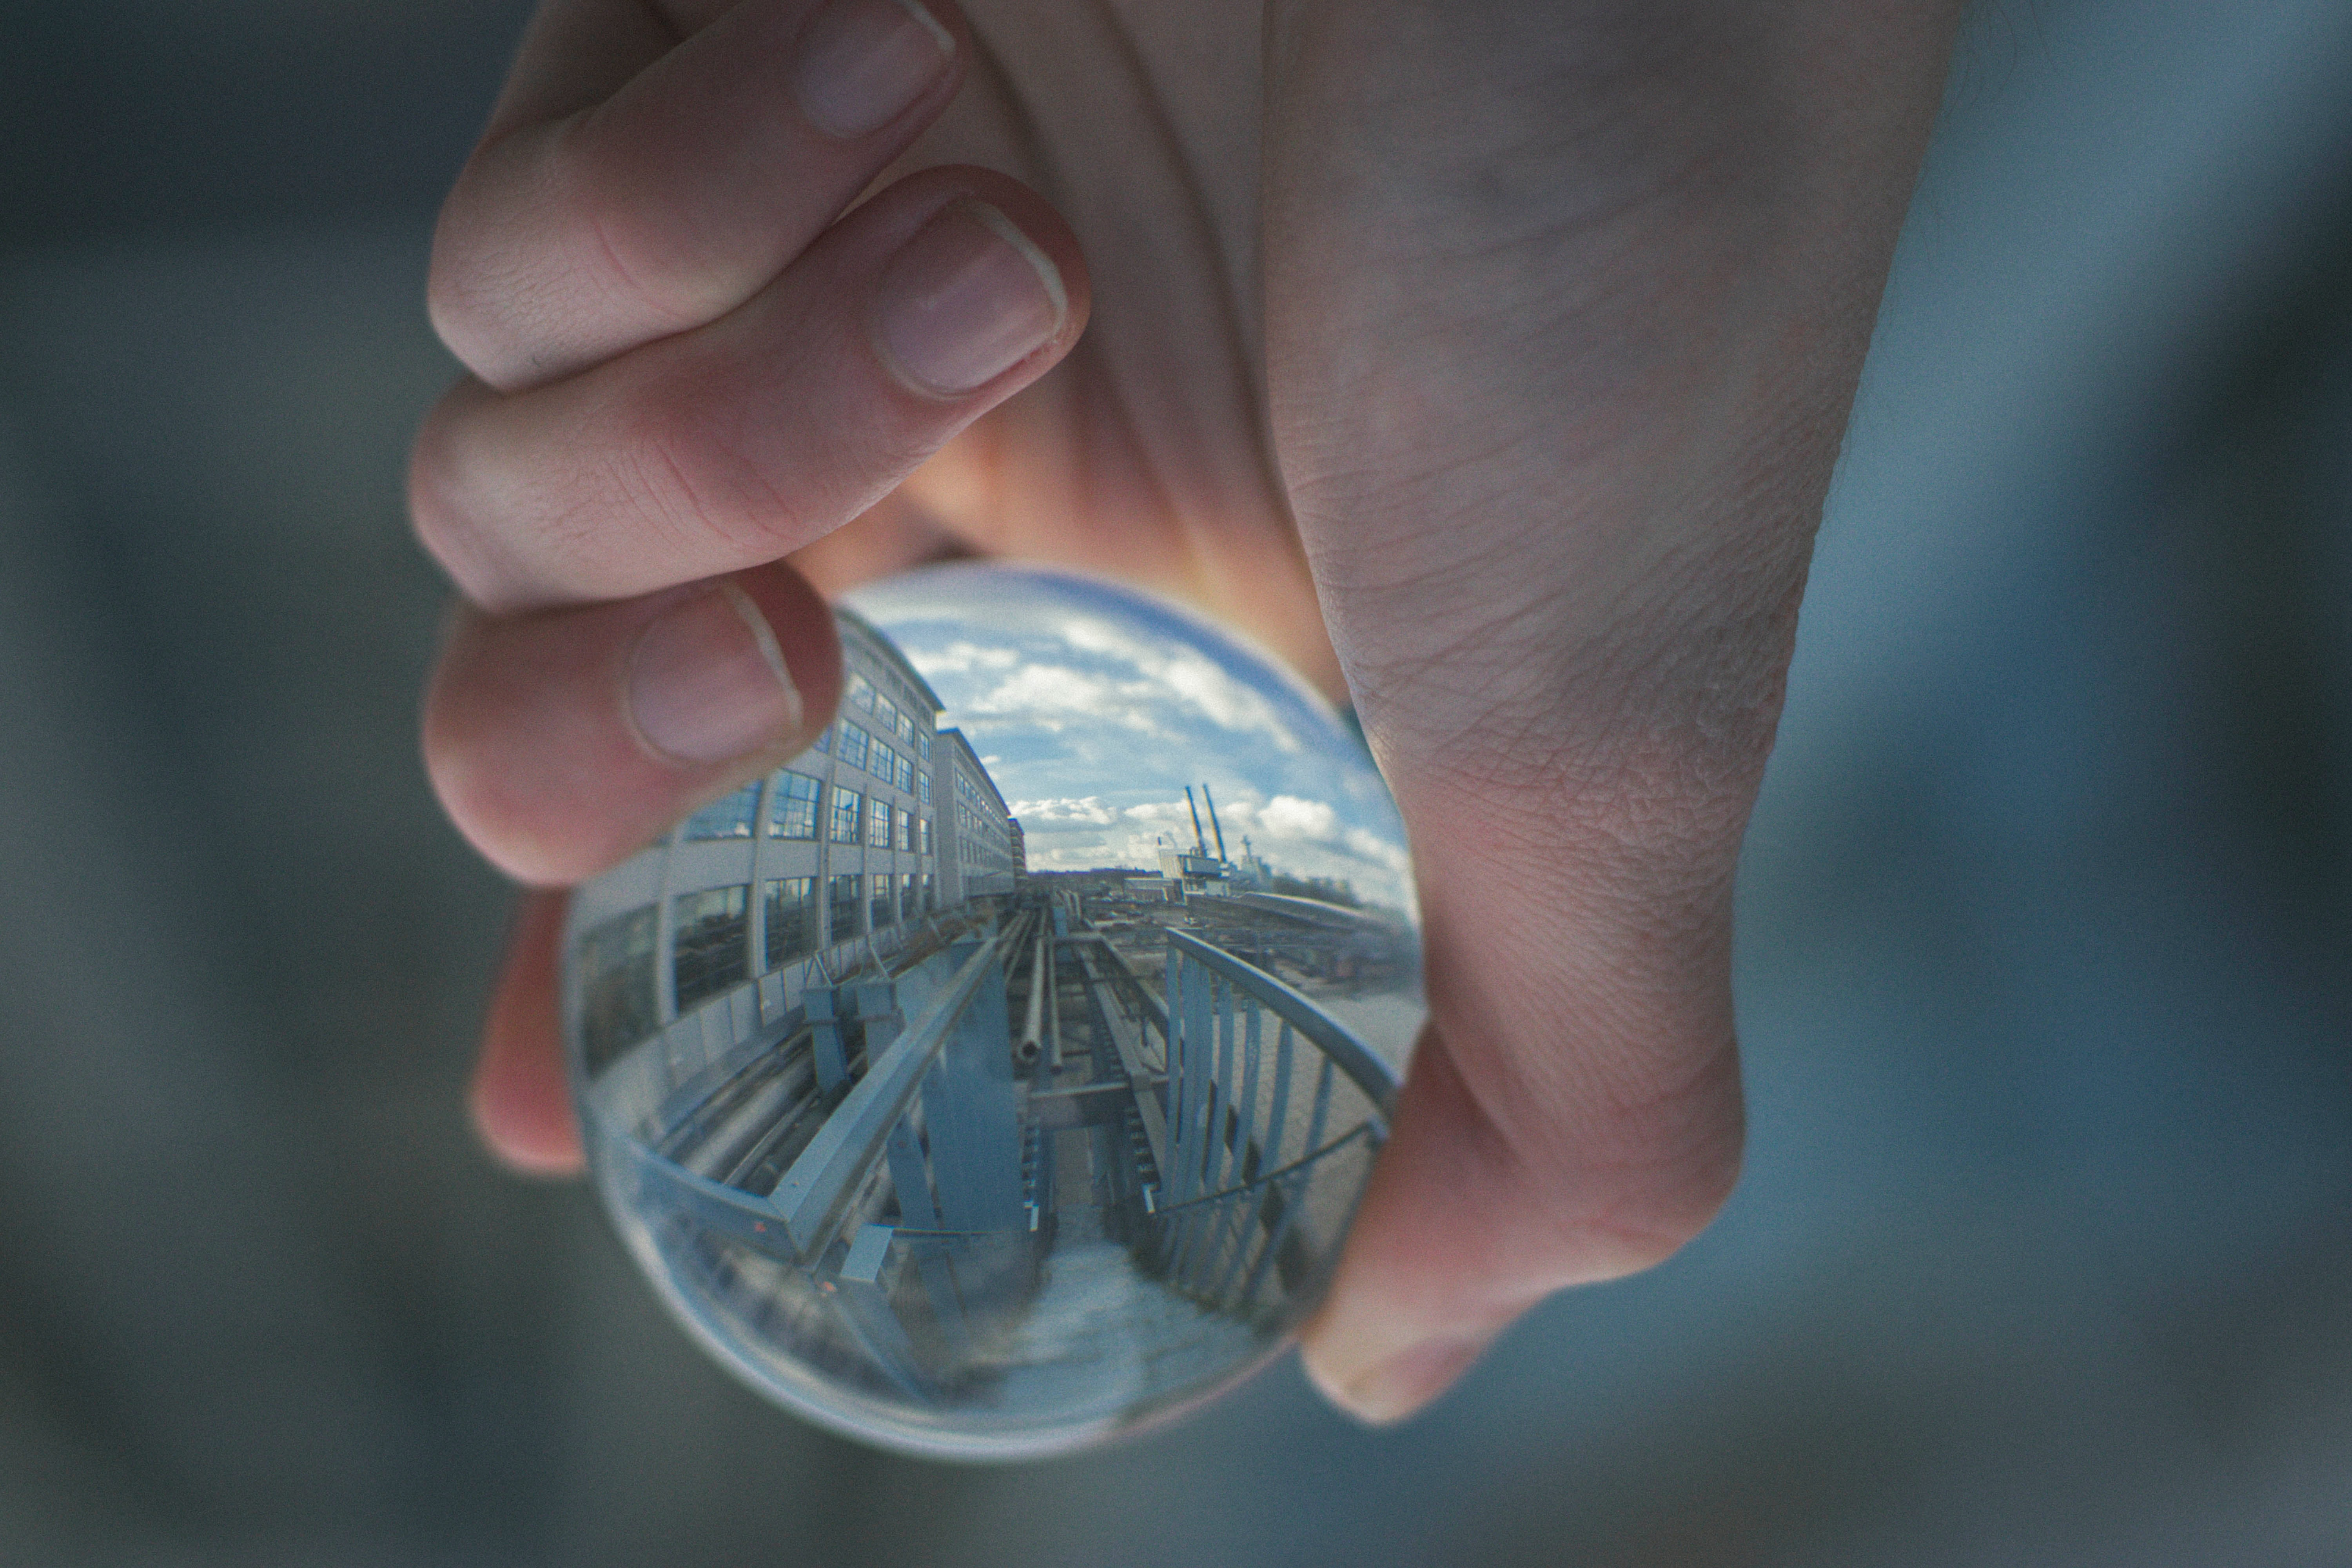 Person holding clear glass decor photo